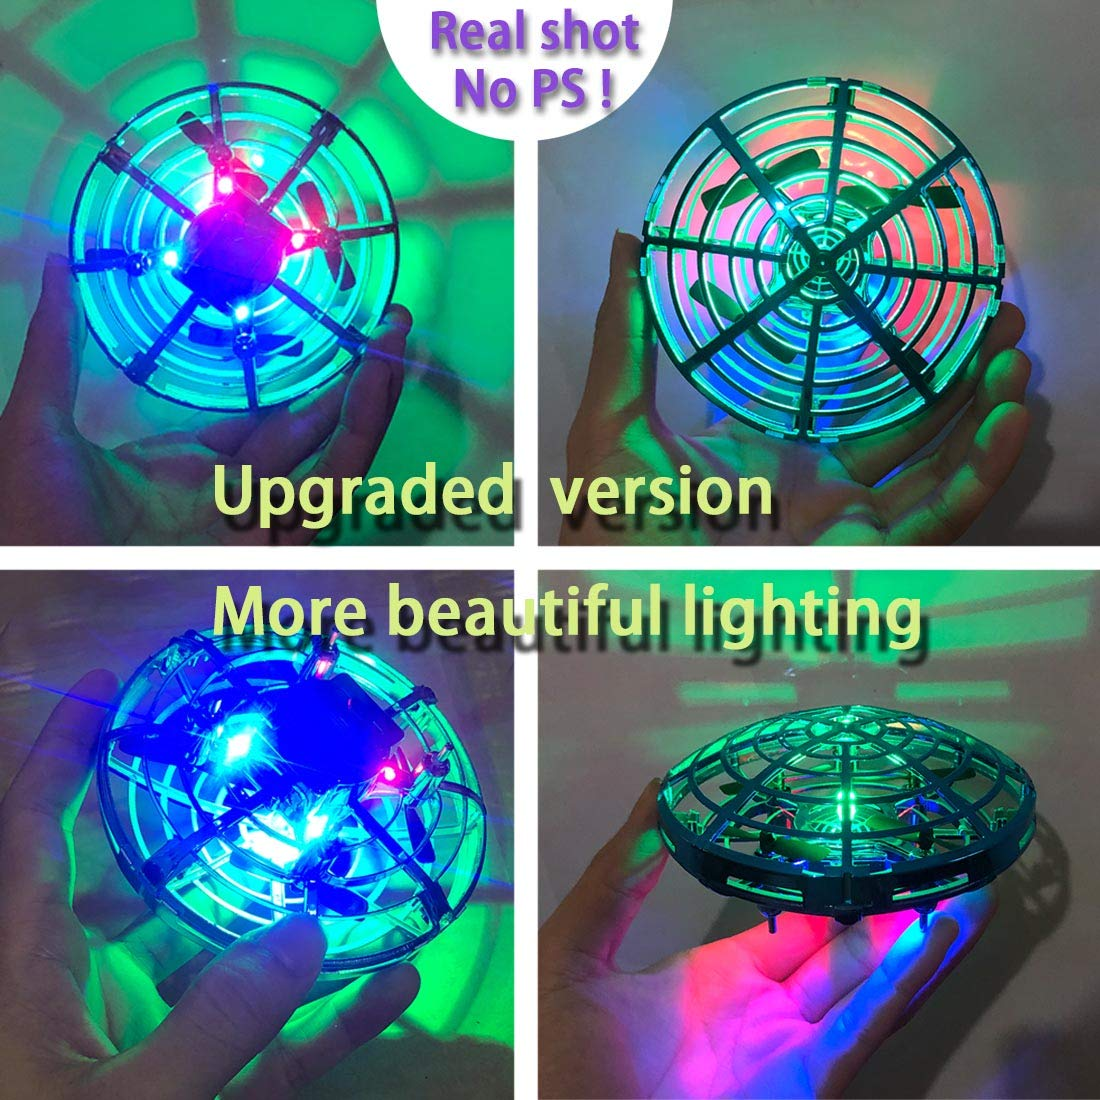 AURISON Flying Ball Drones, Hand-Controlled Drone Quadcopter Flying Toys Interactive Infrared Induction Helicopter Ball with 360°Rotating and Flashing LED Lights for Kids or Adults Gifts(Red) by AURISON (Image #3)